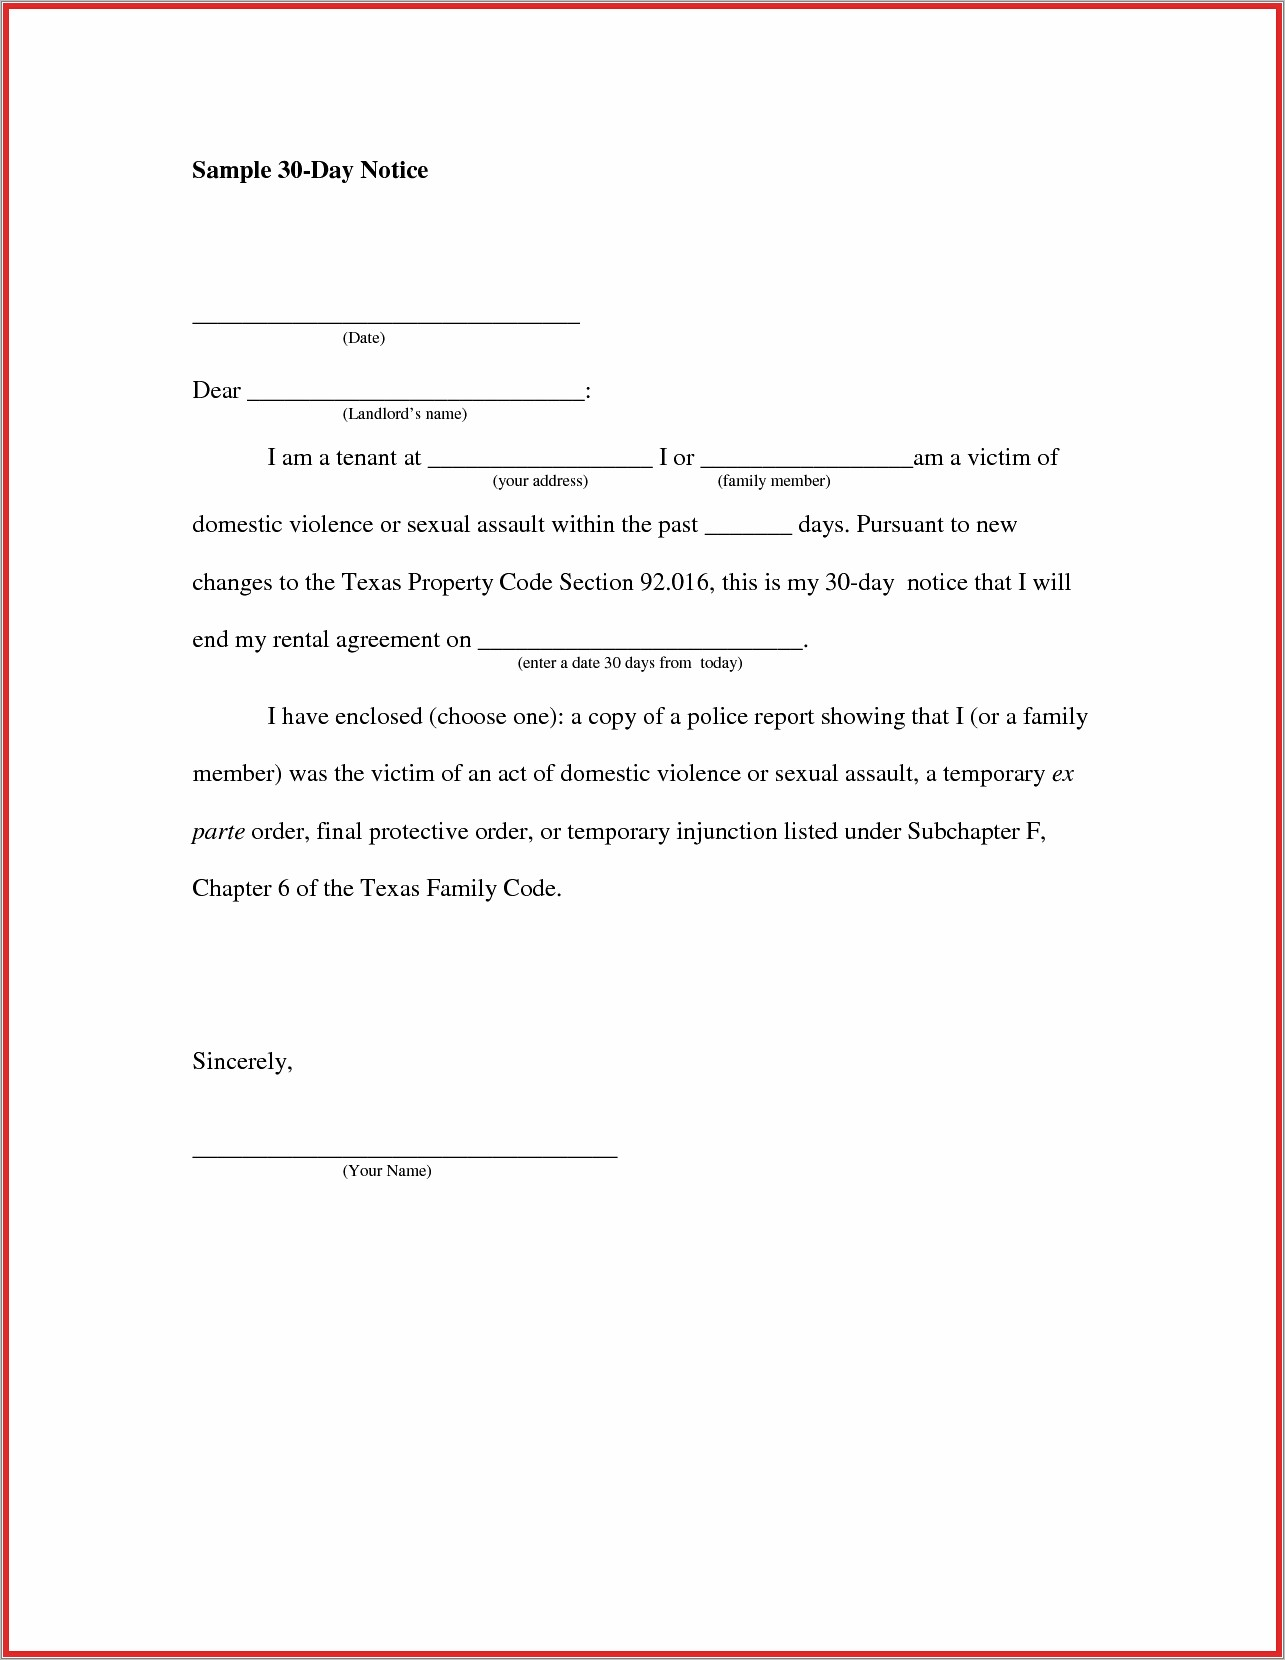 Sample Letter 30 Days Notice To Landlord